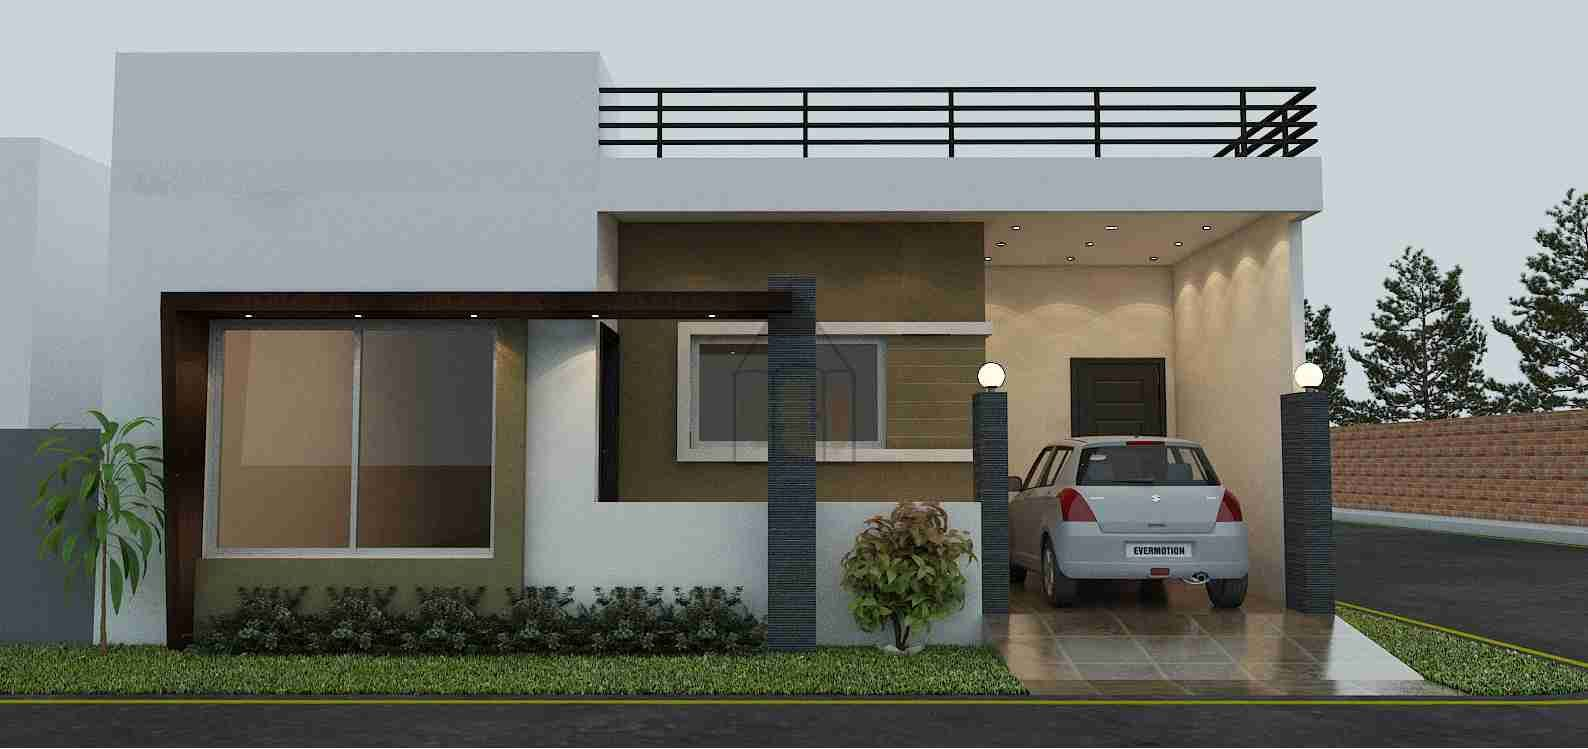 Bungalow Style Design Of A House Having Dimensions 60x112